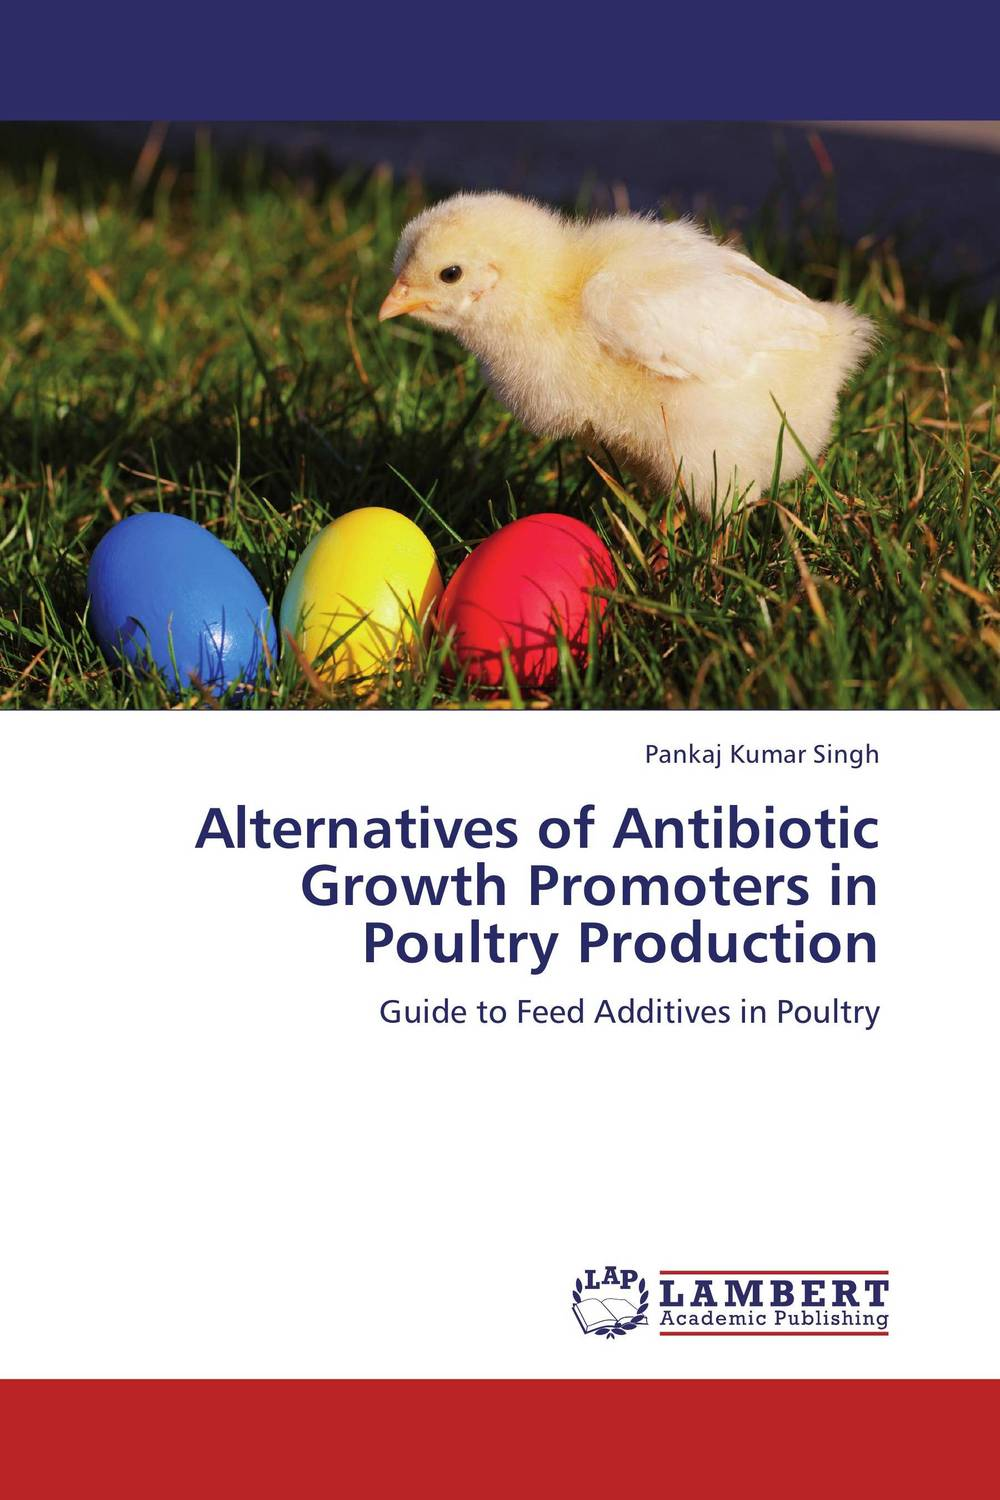 Alternatives of Antibiotic Growth Promoters in Poultry Production adsorbent of mycotoxins as feed additives in farm animals